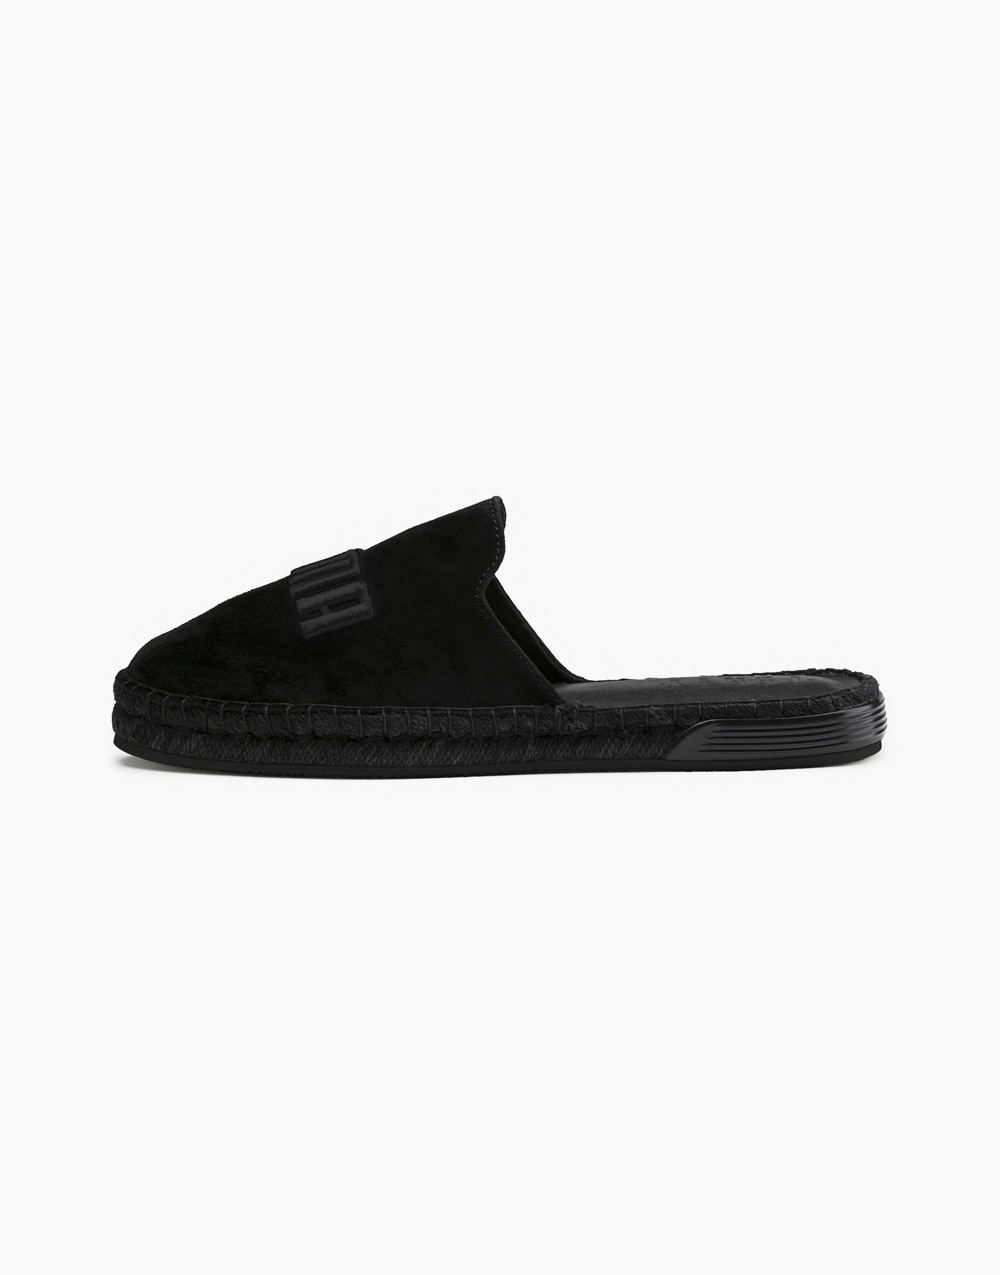 Fenty Espadrille in Black by Puma